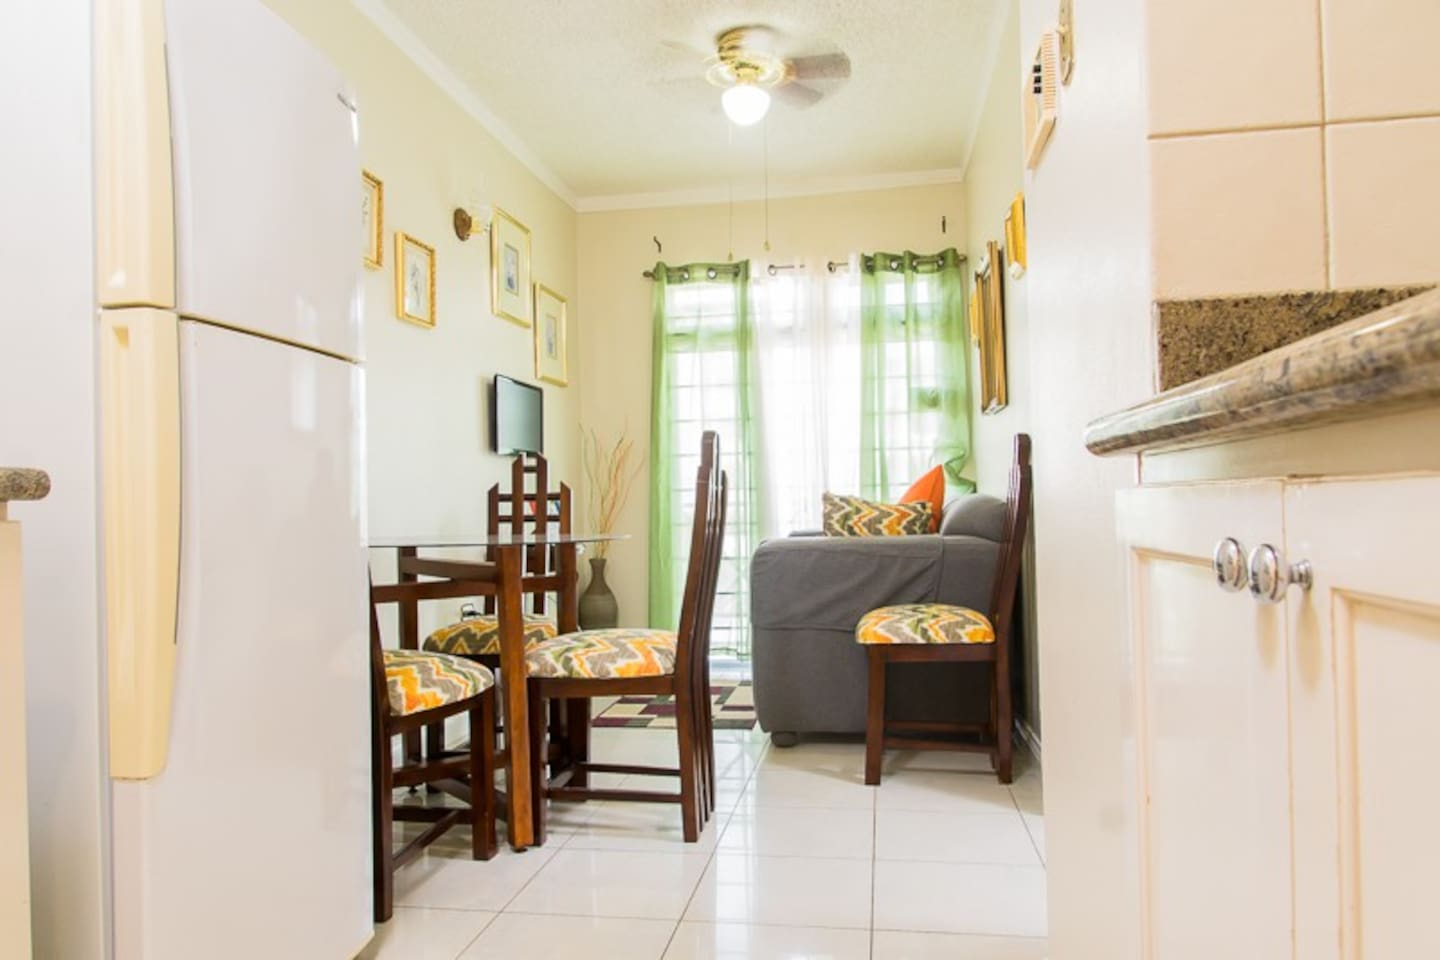 Kingston Jamaica Vacation Rentals - Galley Kitchen Apartment Entrance